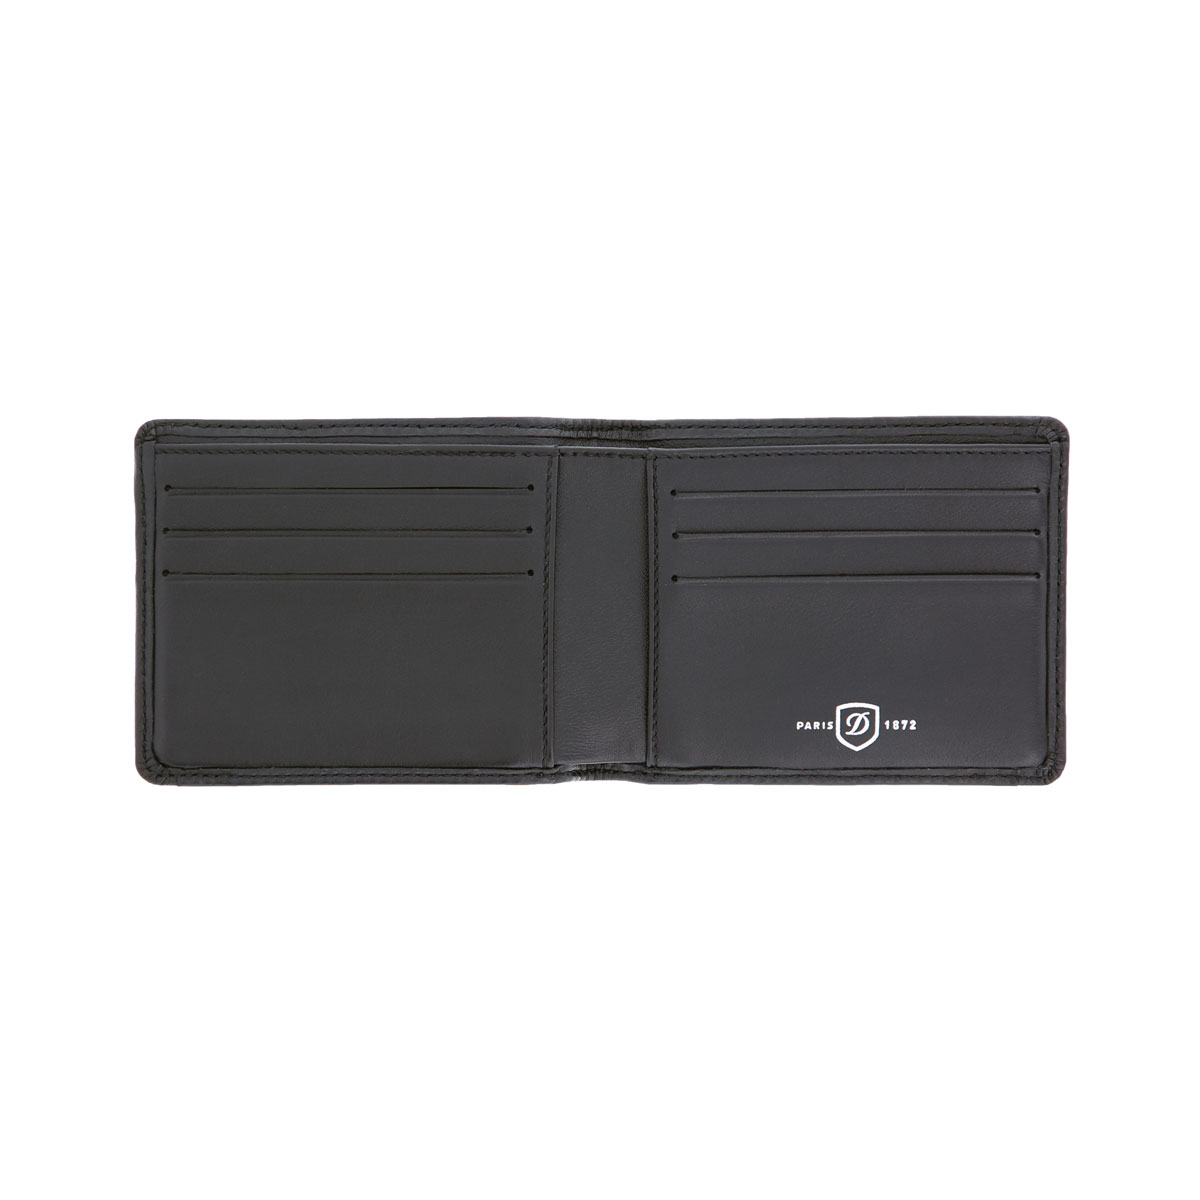 ST Dupont Defi Black Millenium 6 CC Bifold Leather Wallet